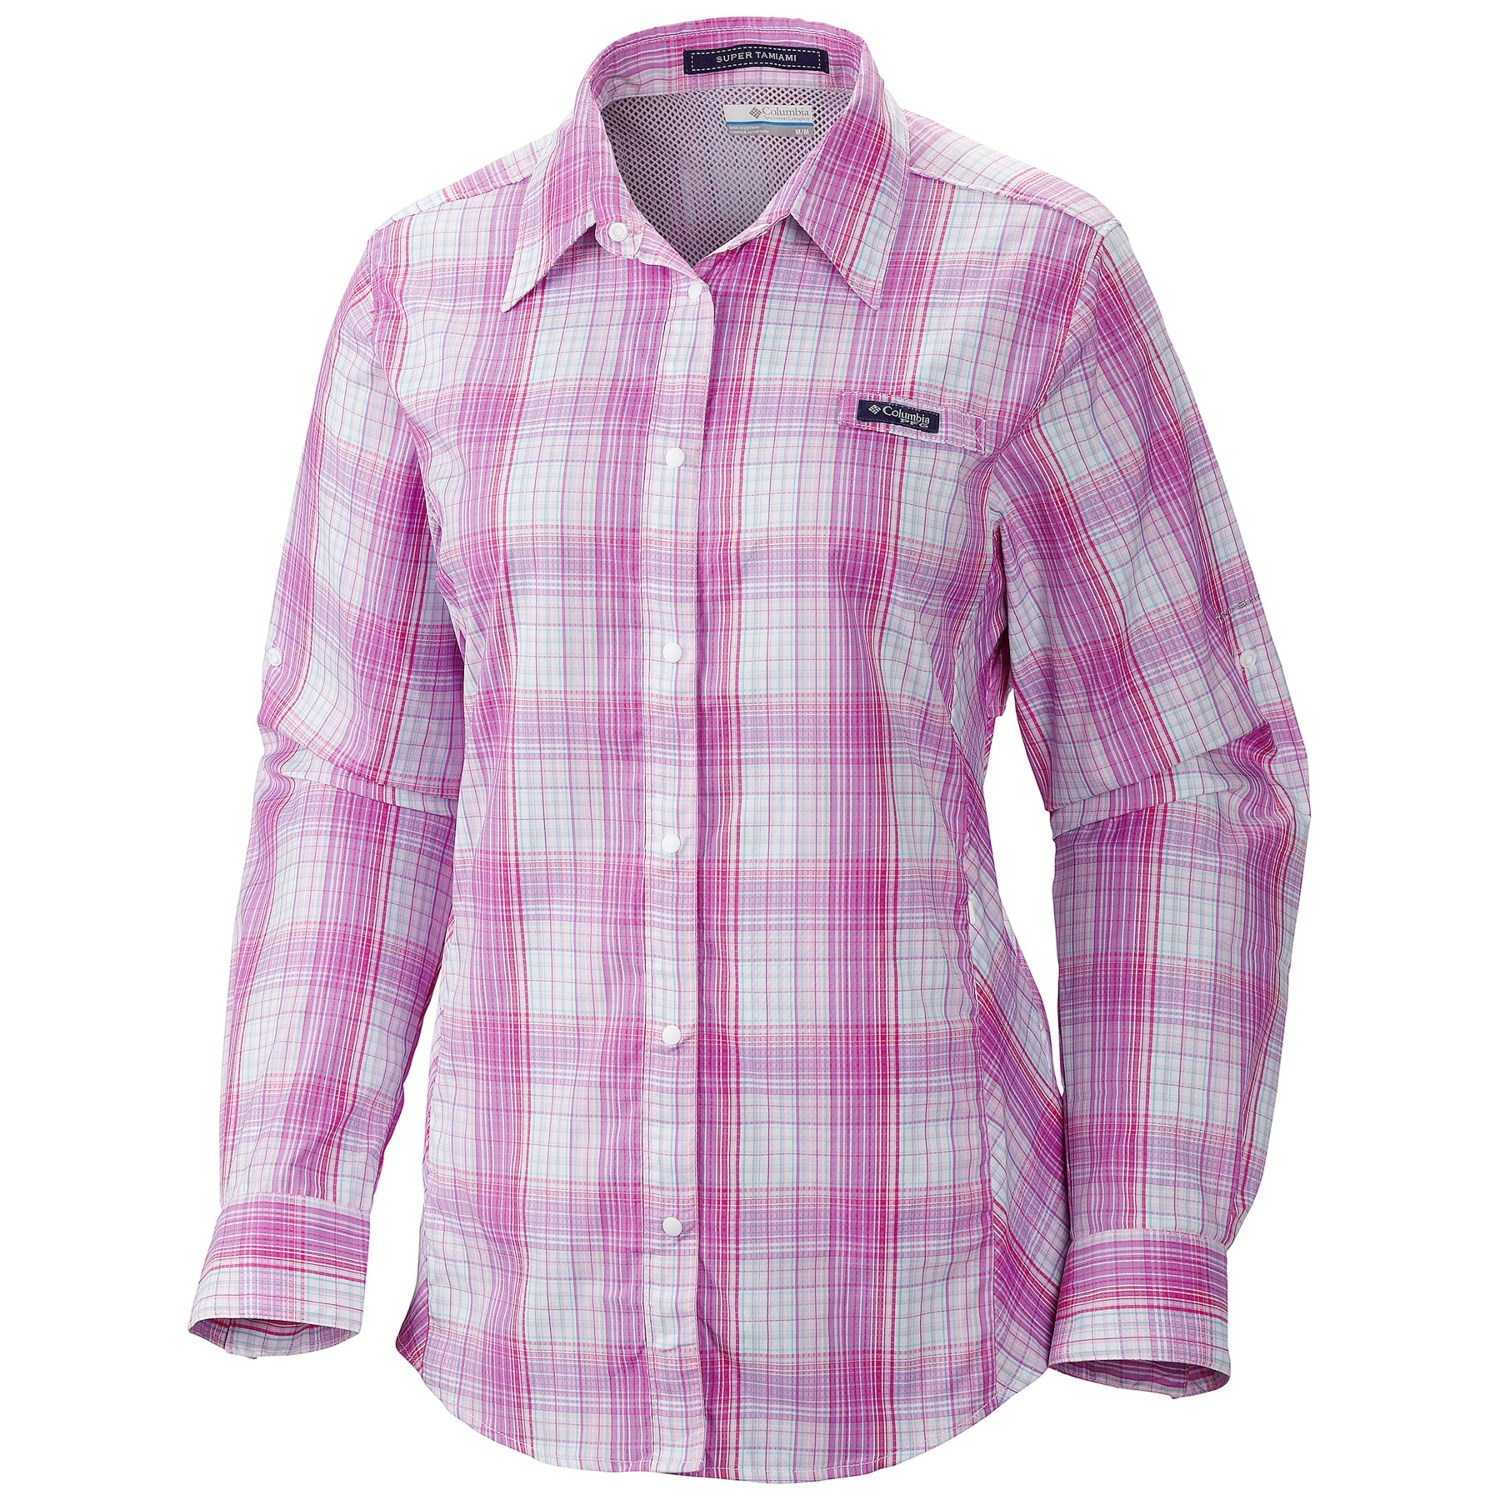 Columbia sportswear fishing shirt taconic golf club Columbia womens fishing shirt